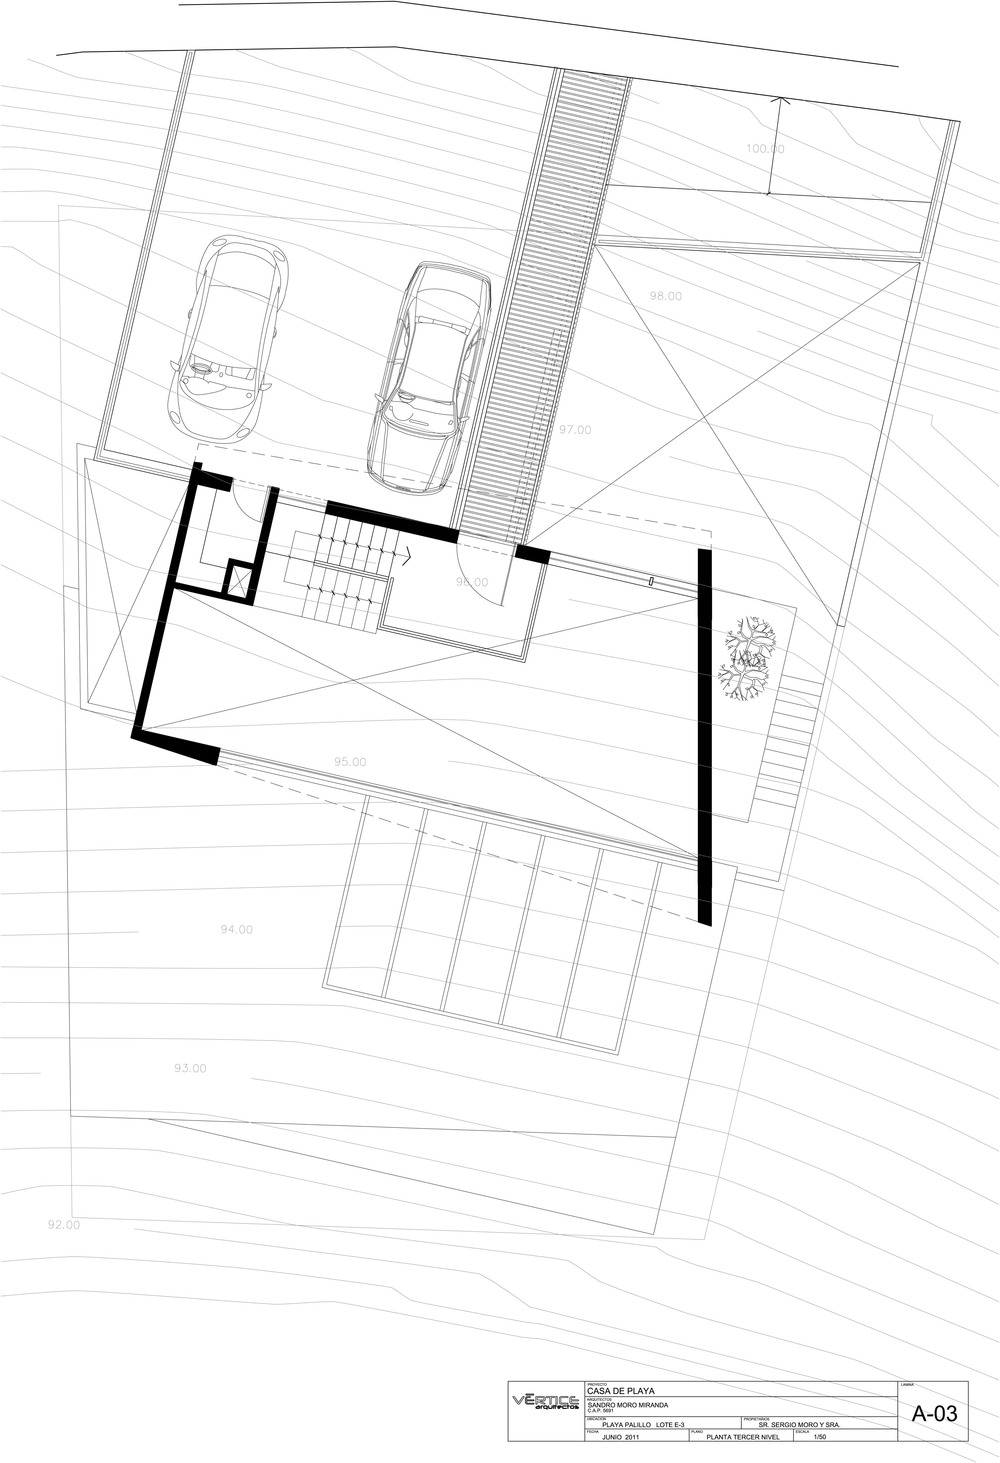 Second Floor Plan, Stunning Home situated above Palillos Beach, Peru